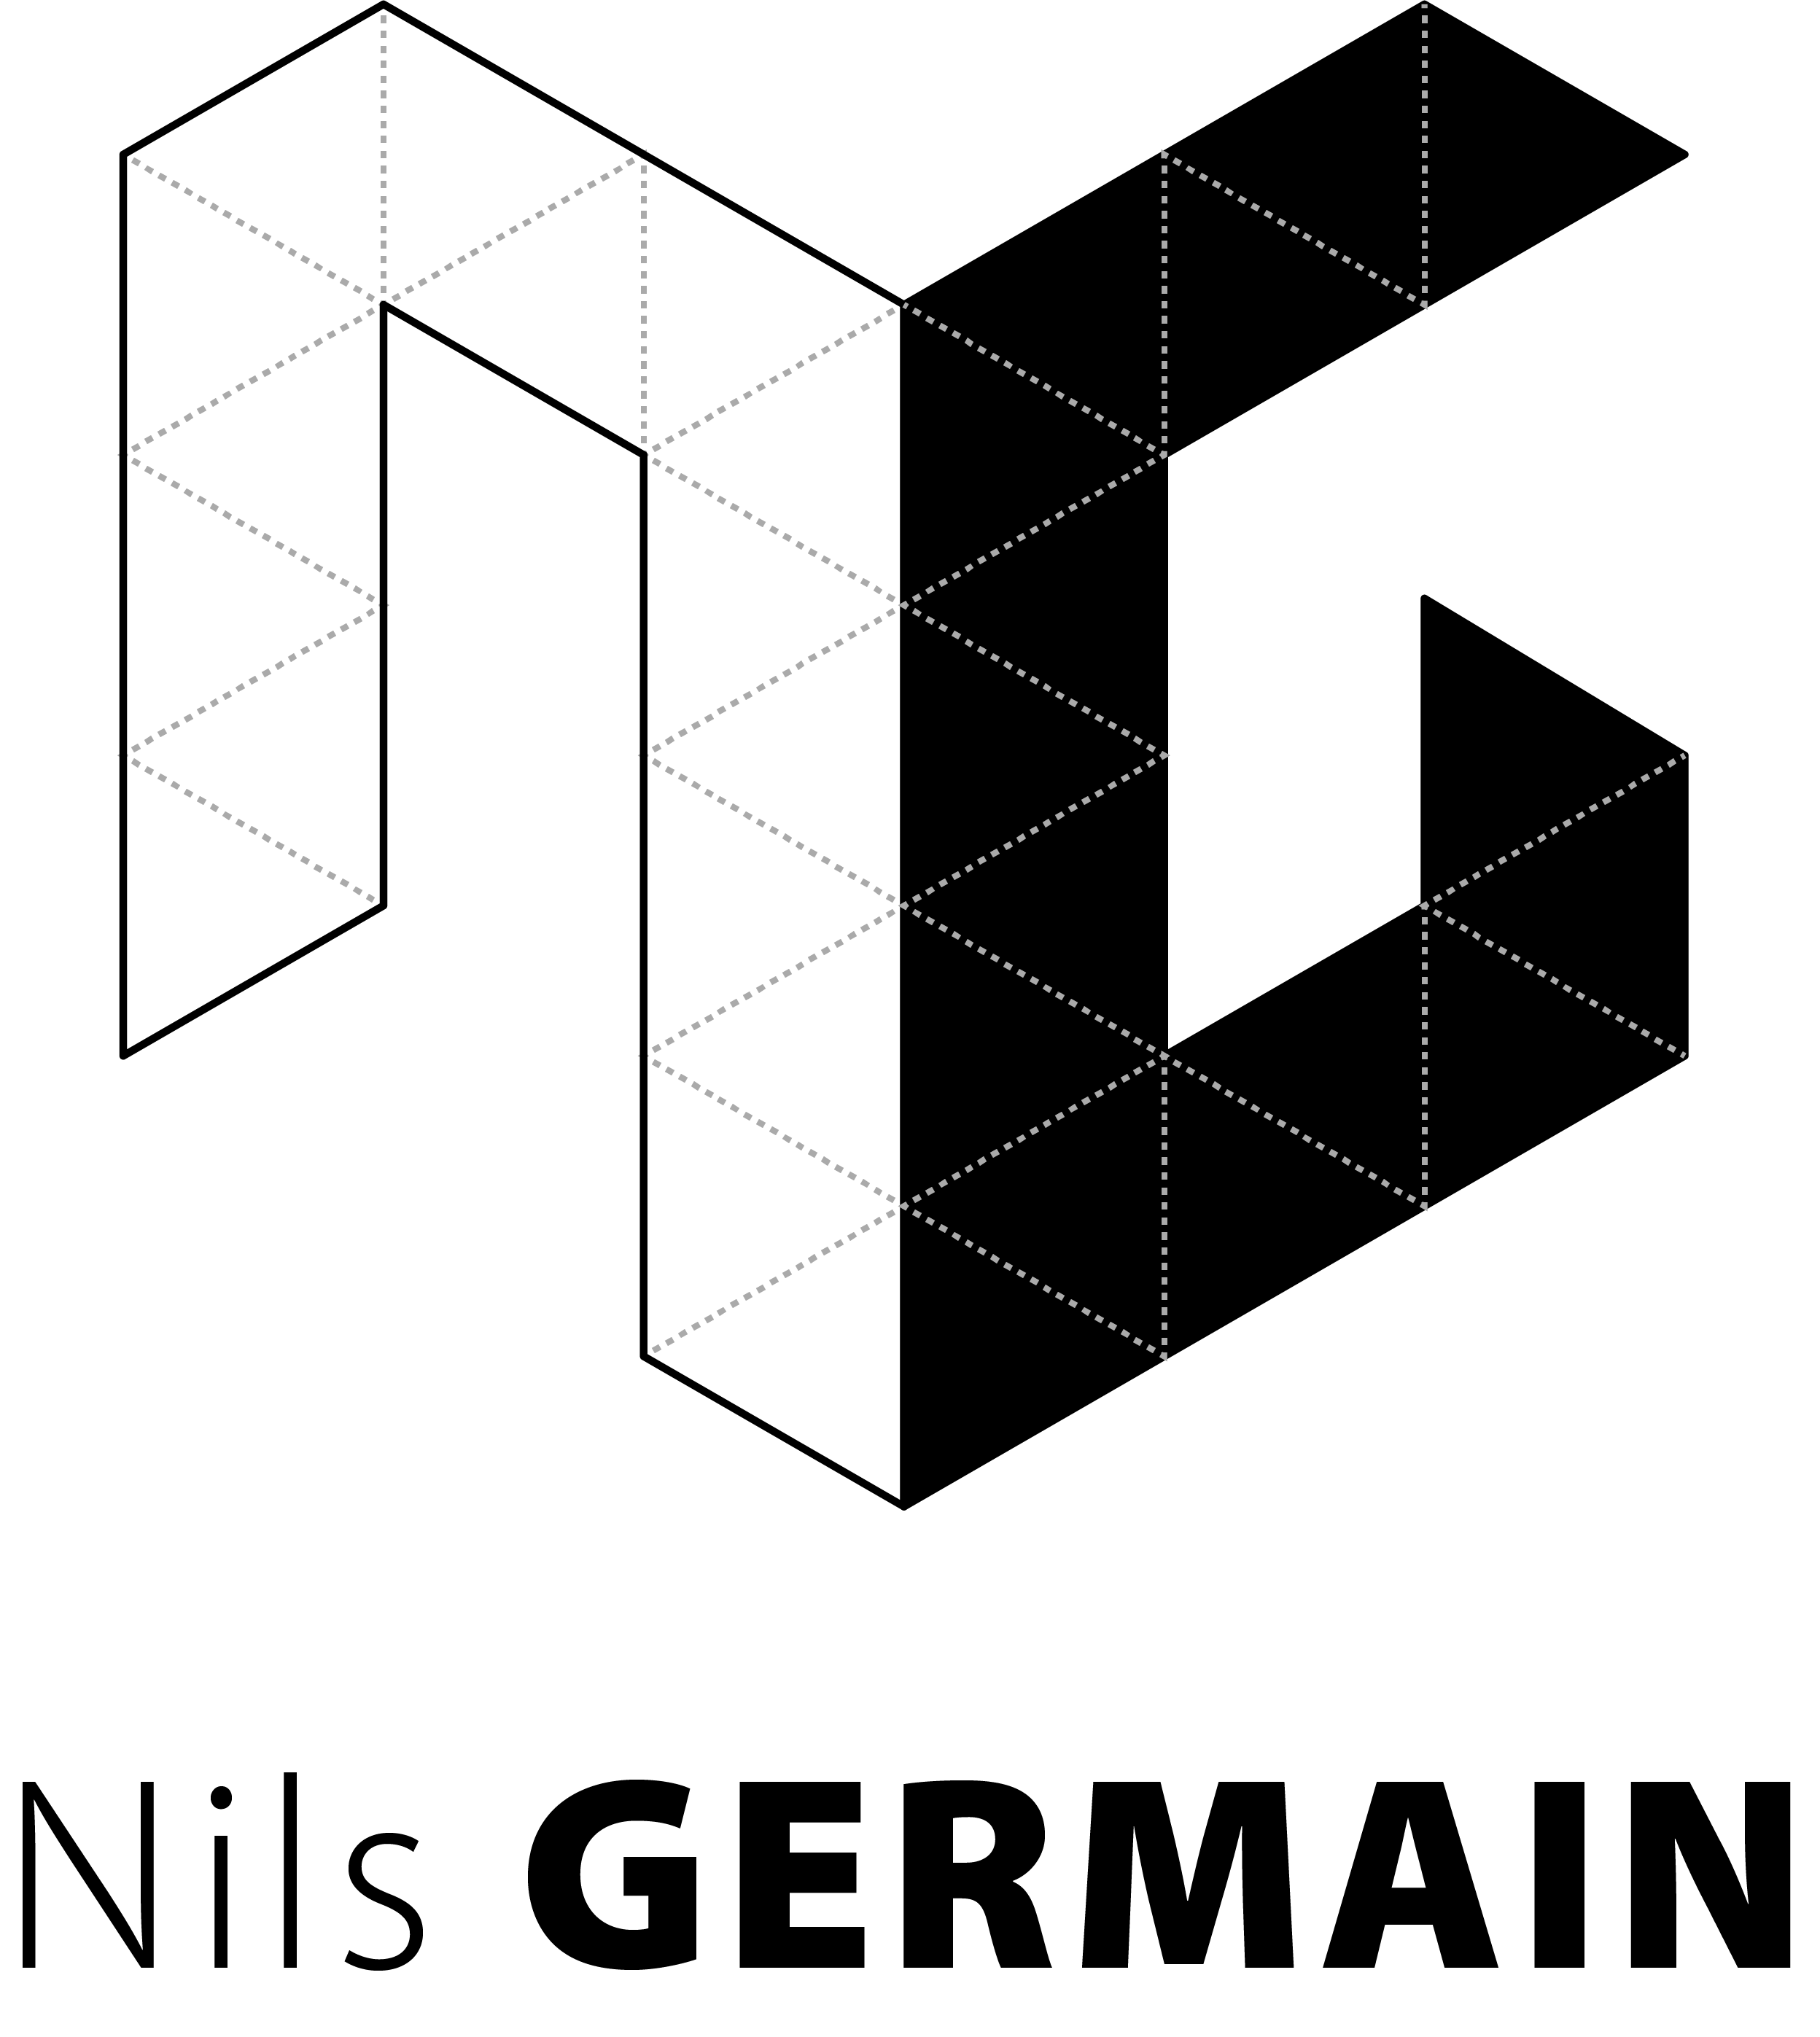 Nils Germain